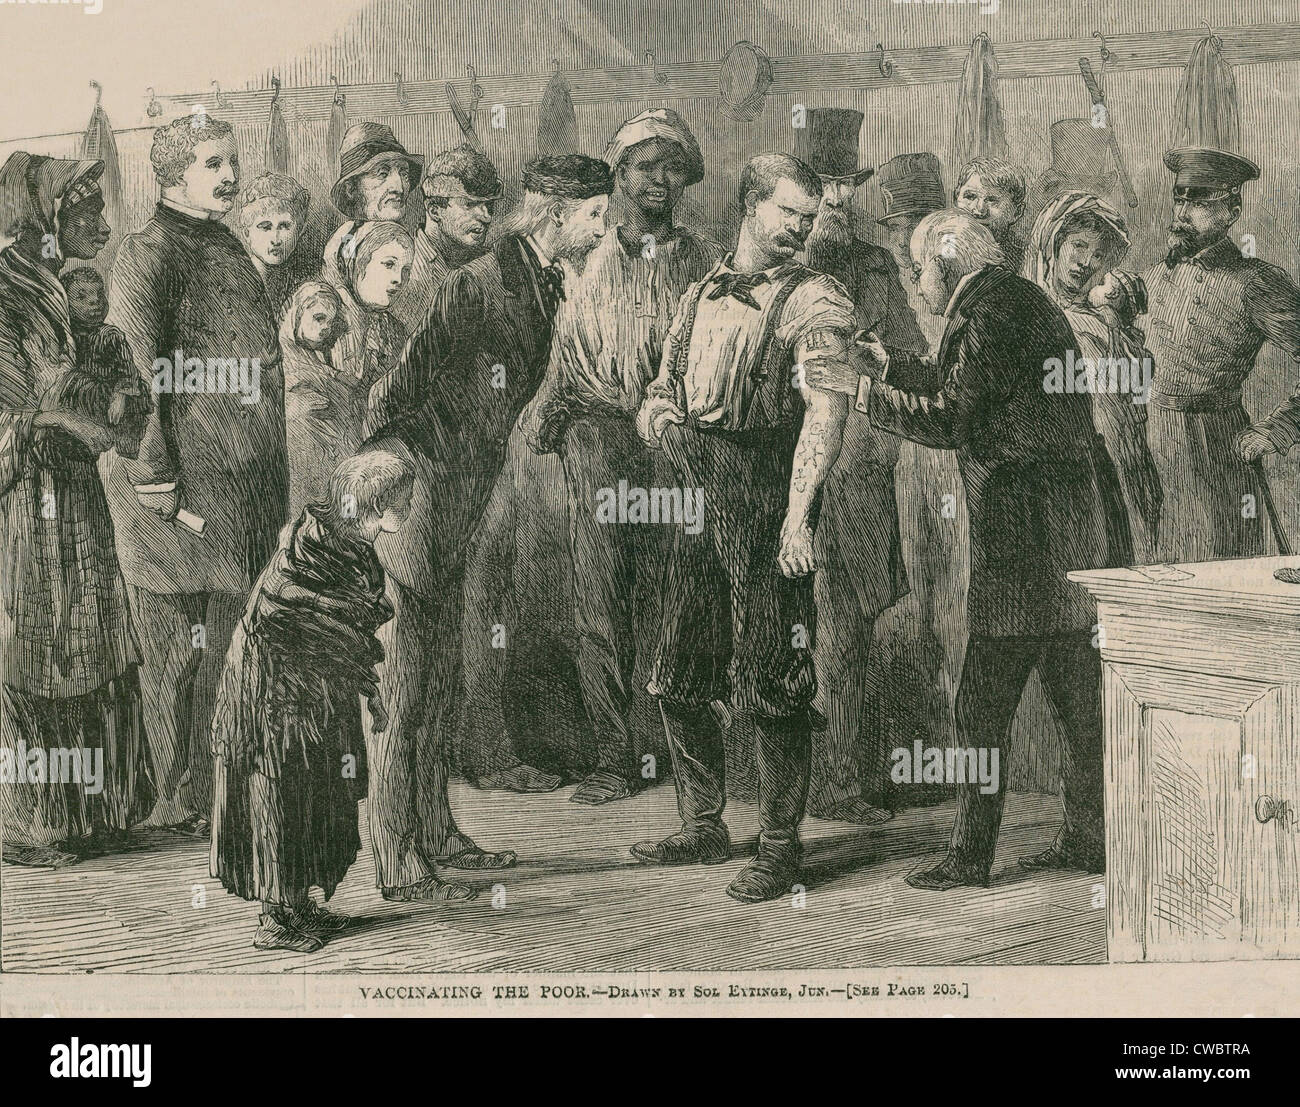 Vaccinating the poor of New York City against smallpox in 1872.  In 1863, the mass production of smallpox vaccine - Stock Image